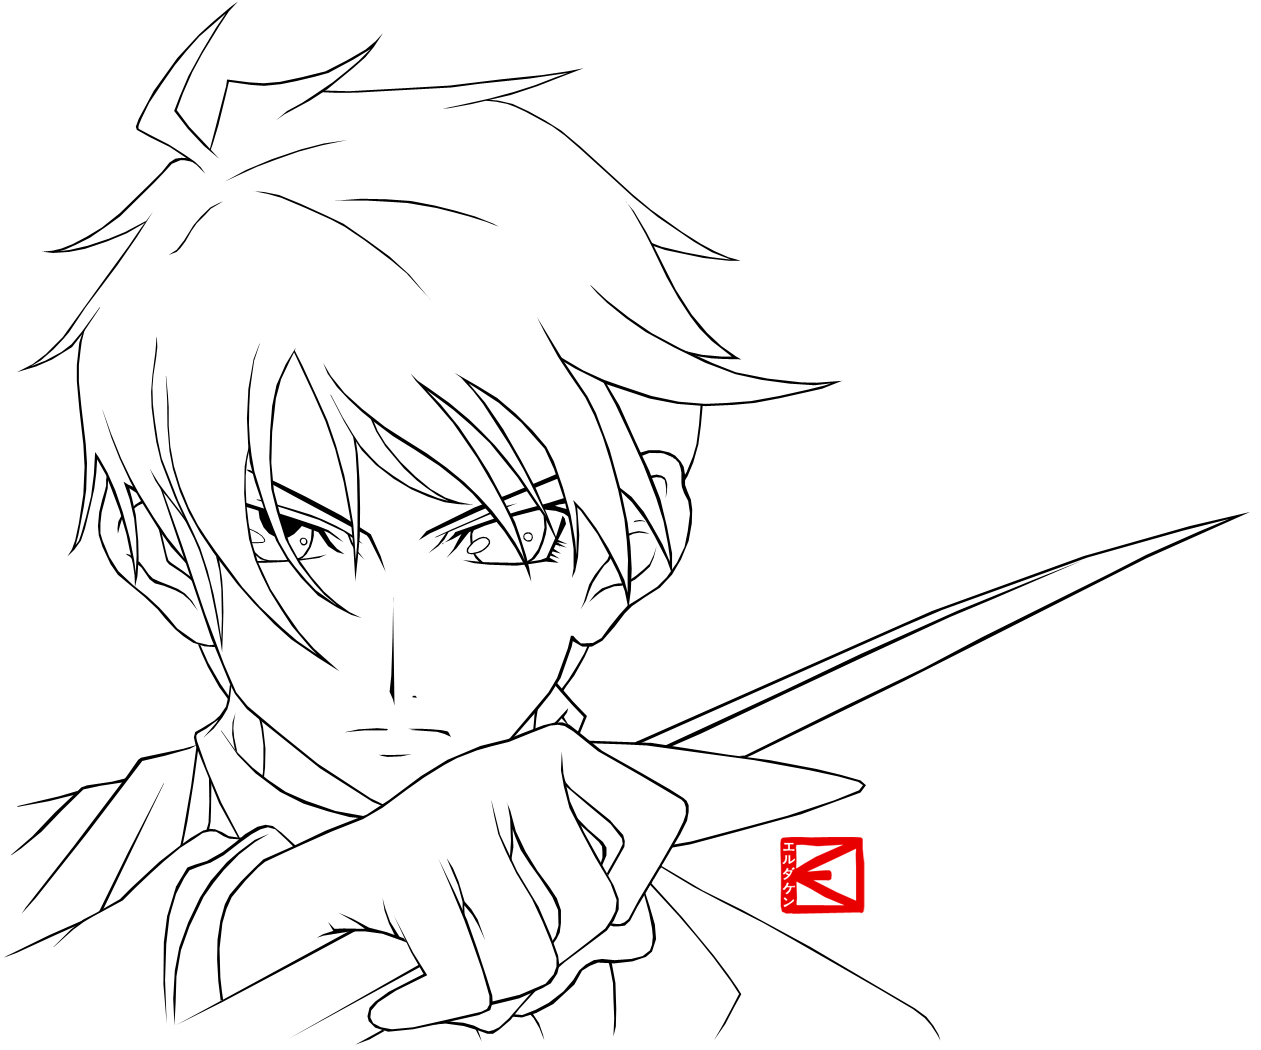 Portfolio Anime Guy Coloring Pages Portfolio Anime Guy Coloring Pages